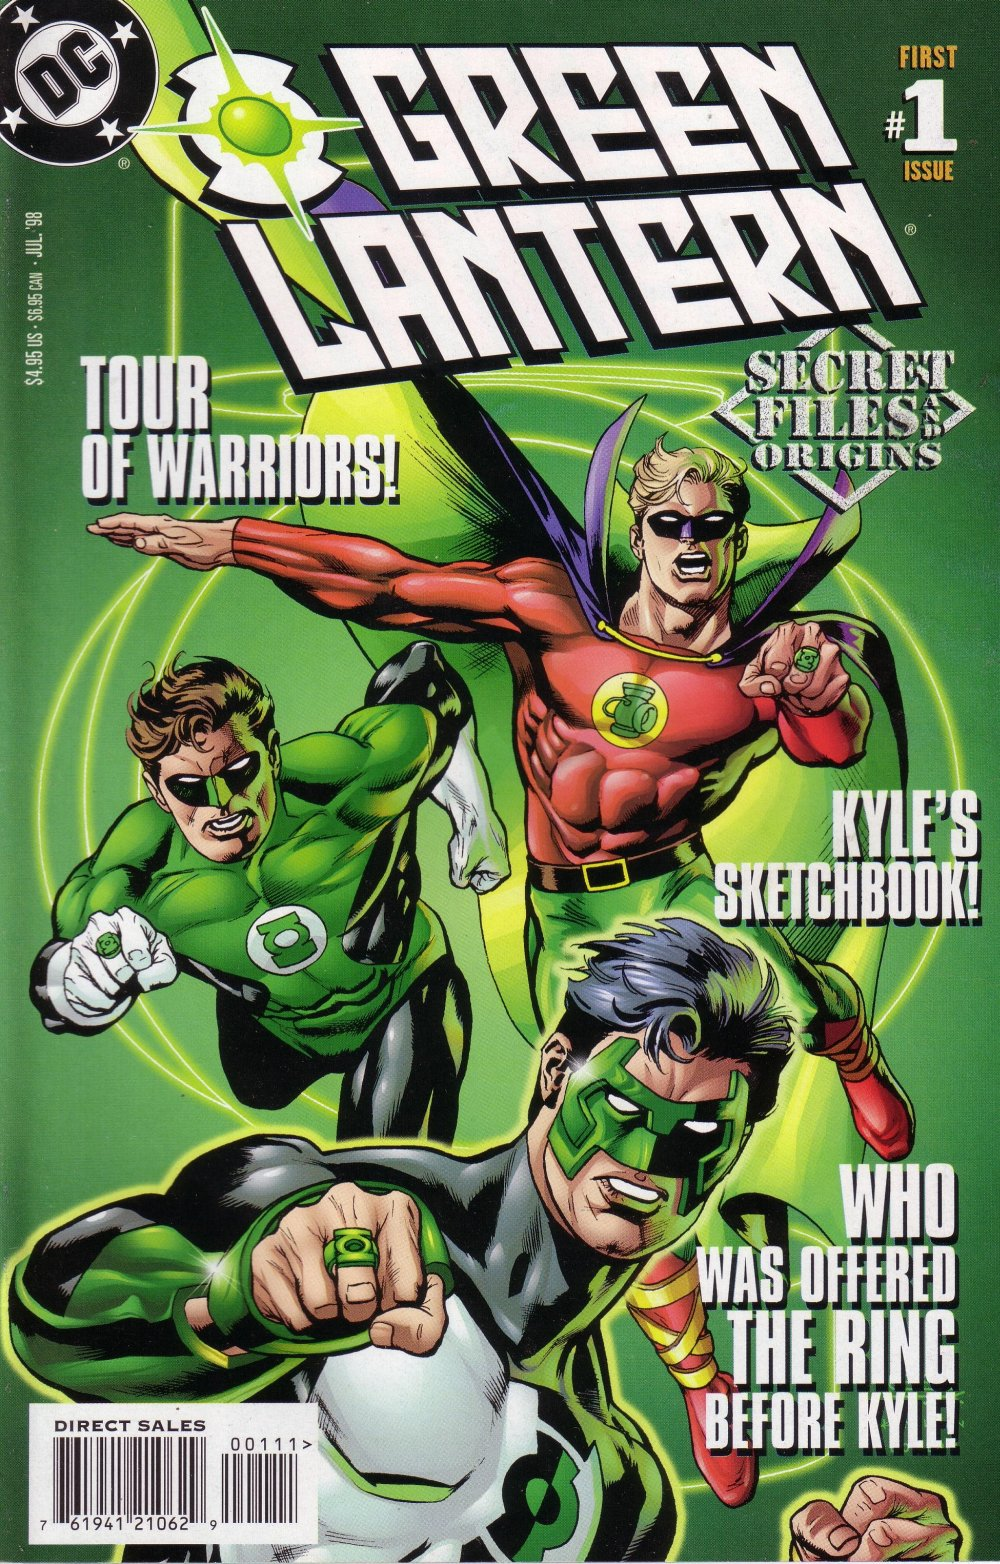 Green Lantern- Secret Files and Origins [DC] 1 0001.JPG